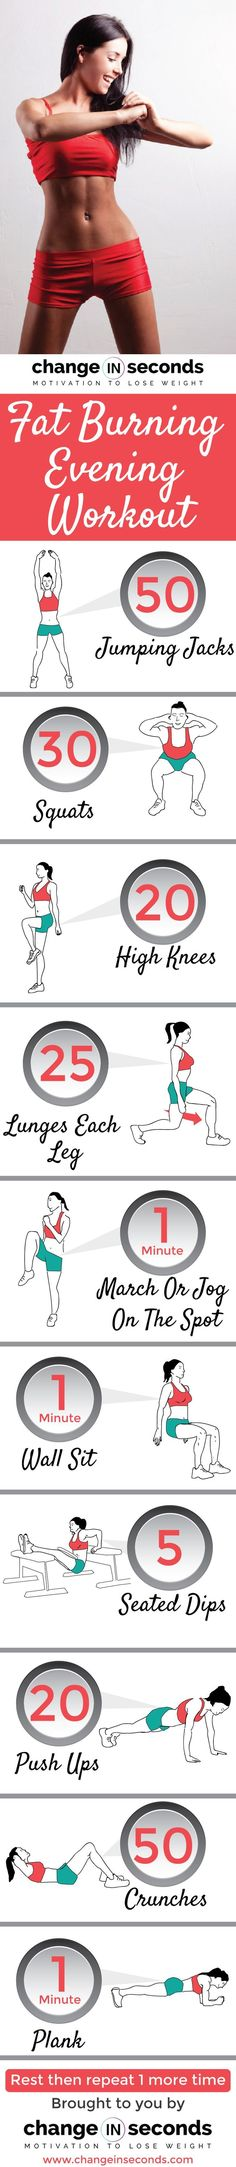 Fat Burning Evening Workout #motivation